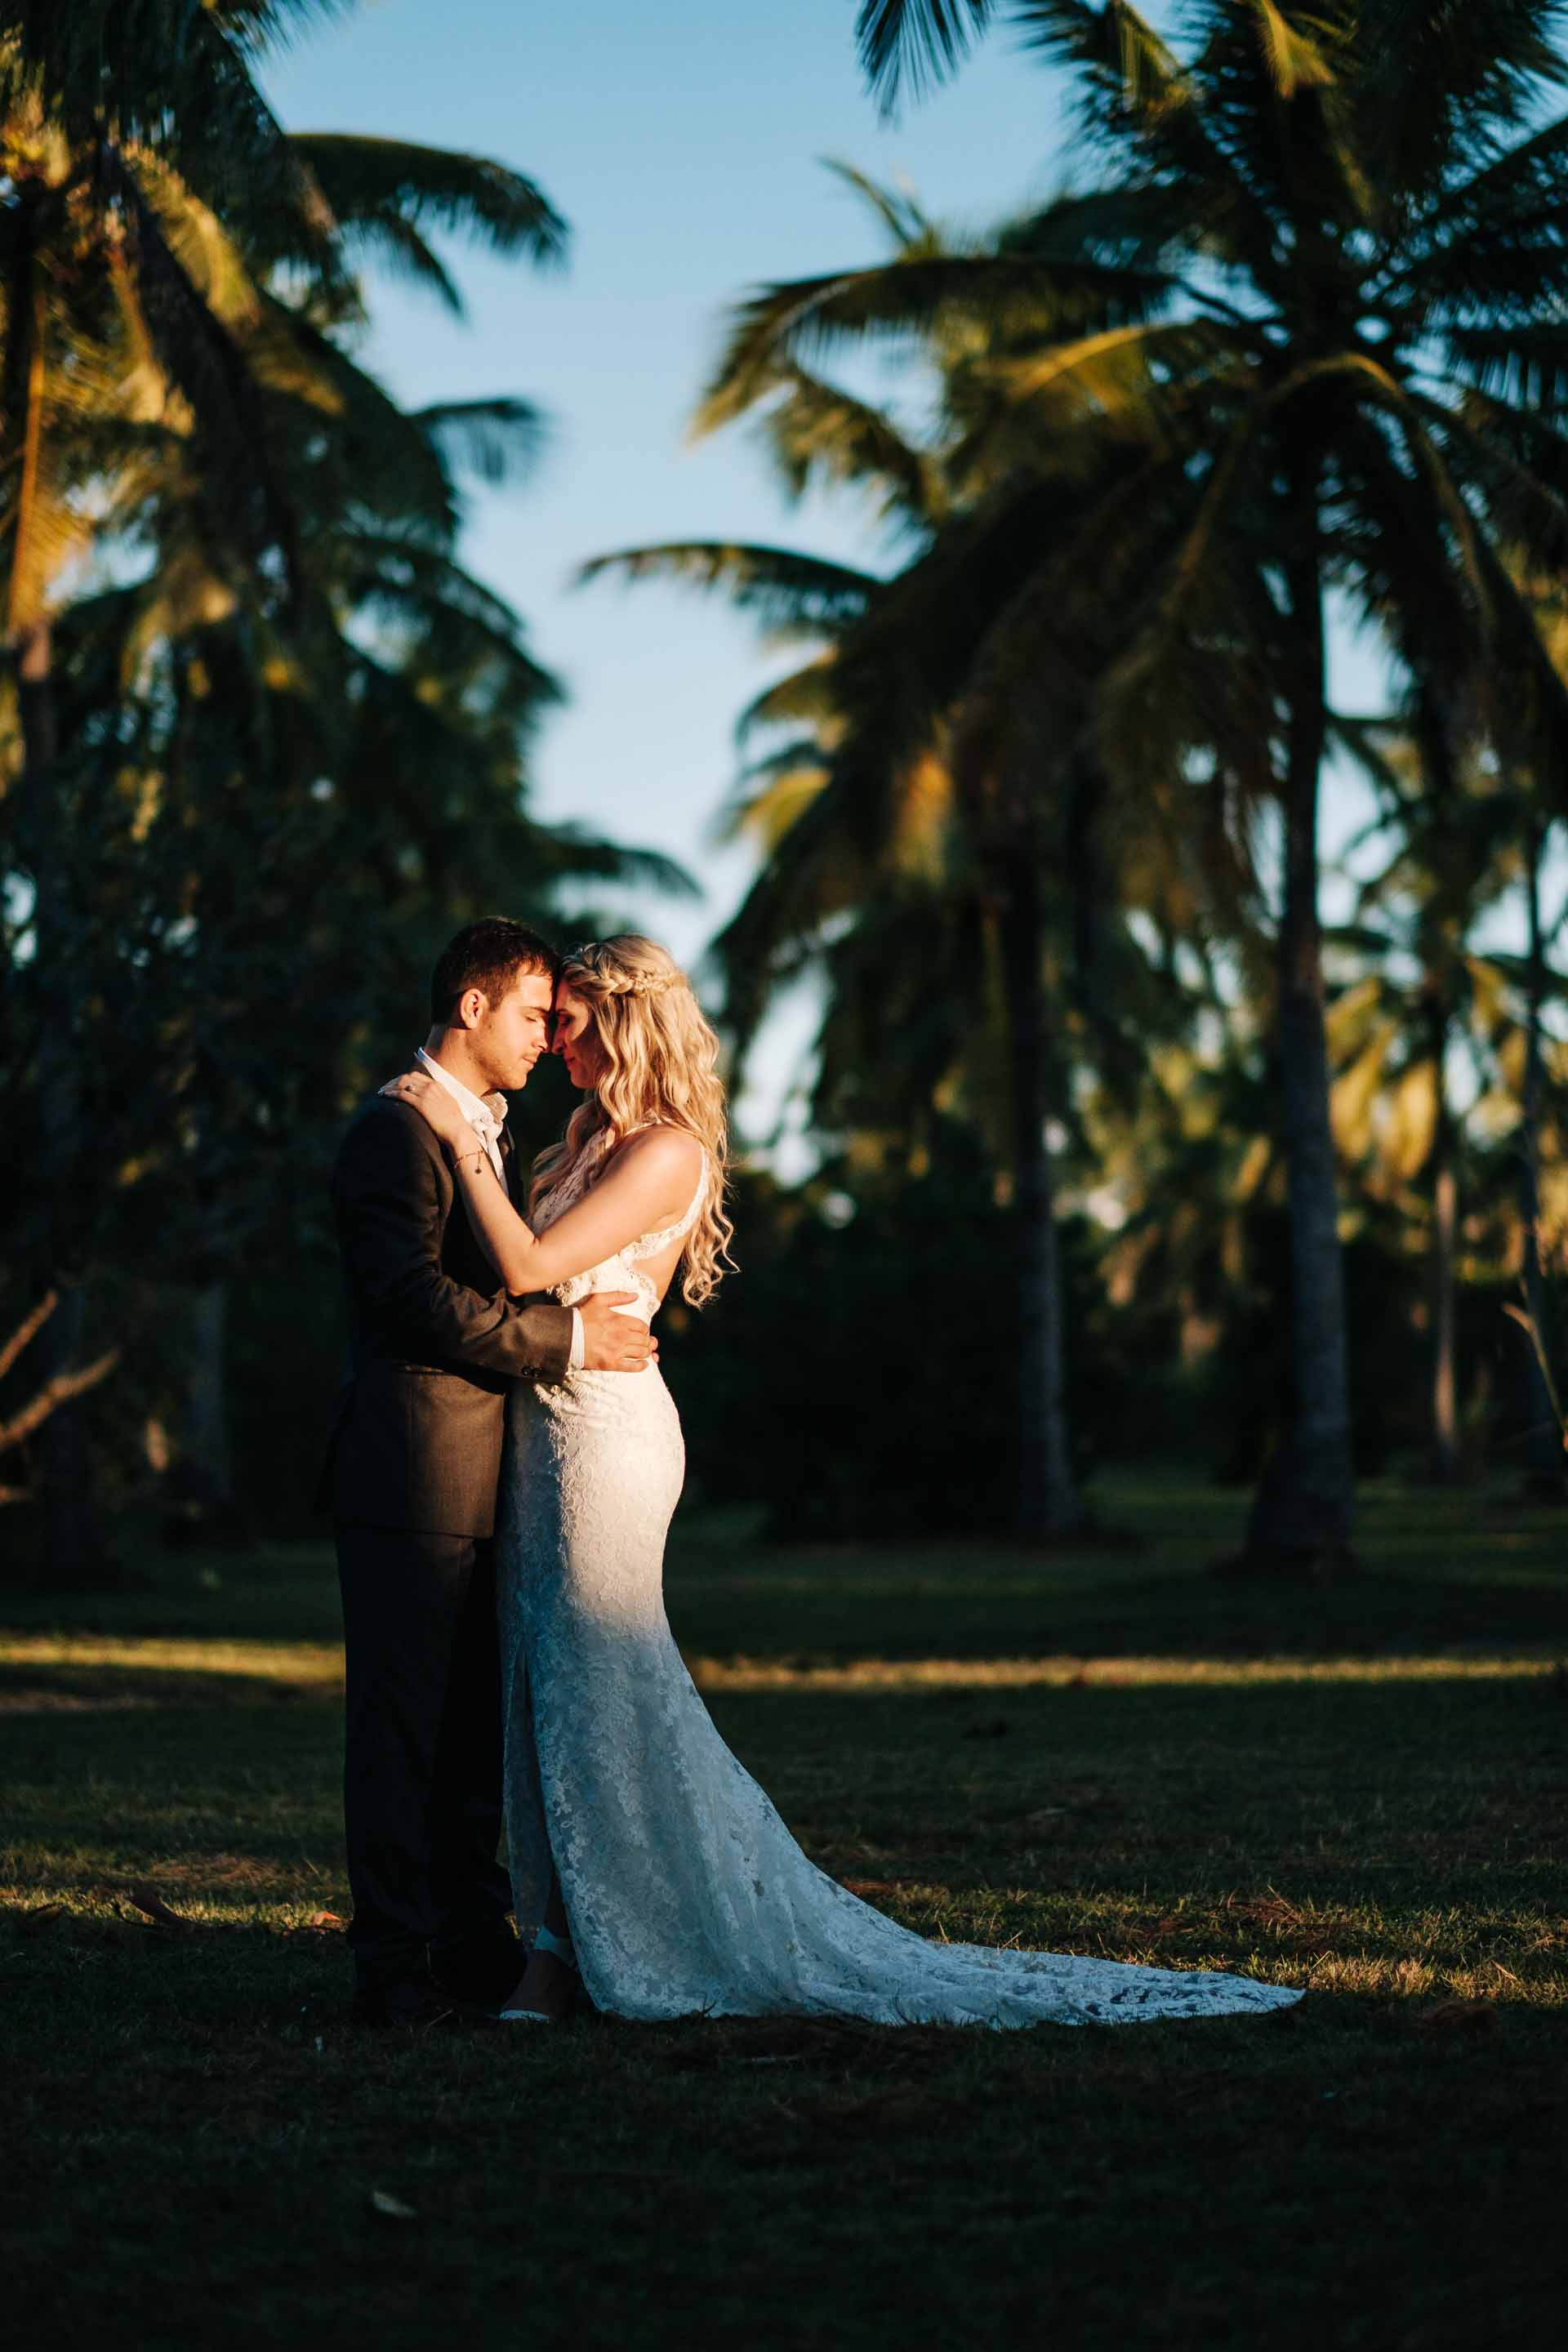 full length portrait of the bride and groom resting their bodies together between rows of coconut trees